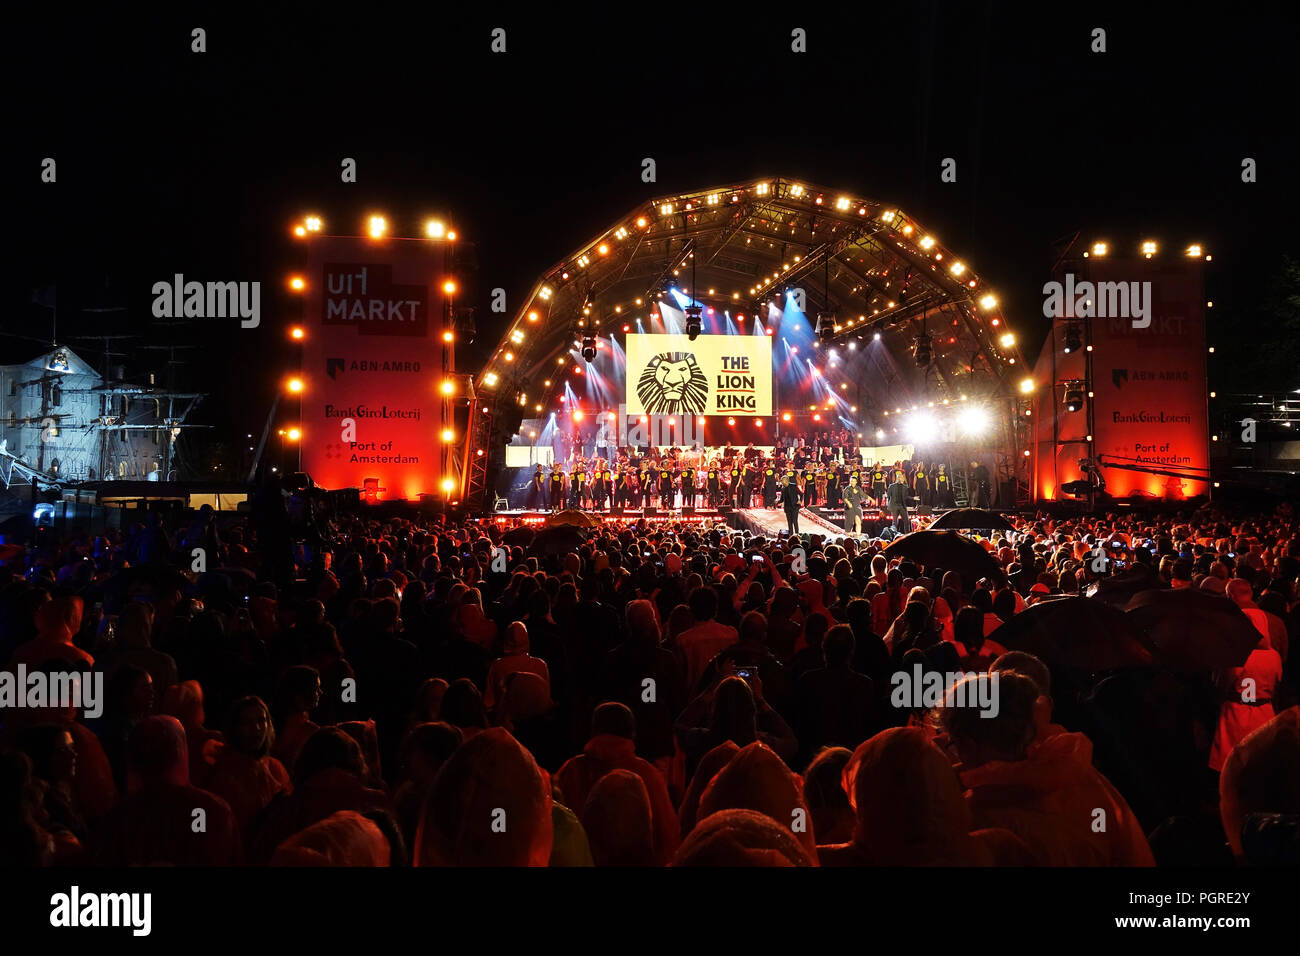 Uitmarkt Amsterdam, the opening of the cultural season in Amsterdam - Stock Image